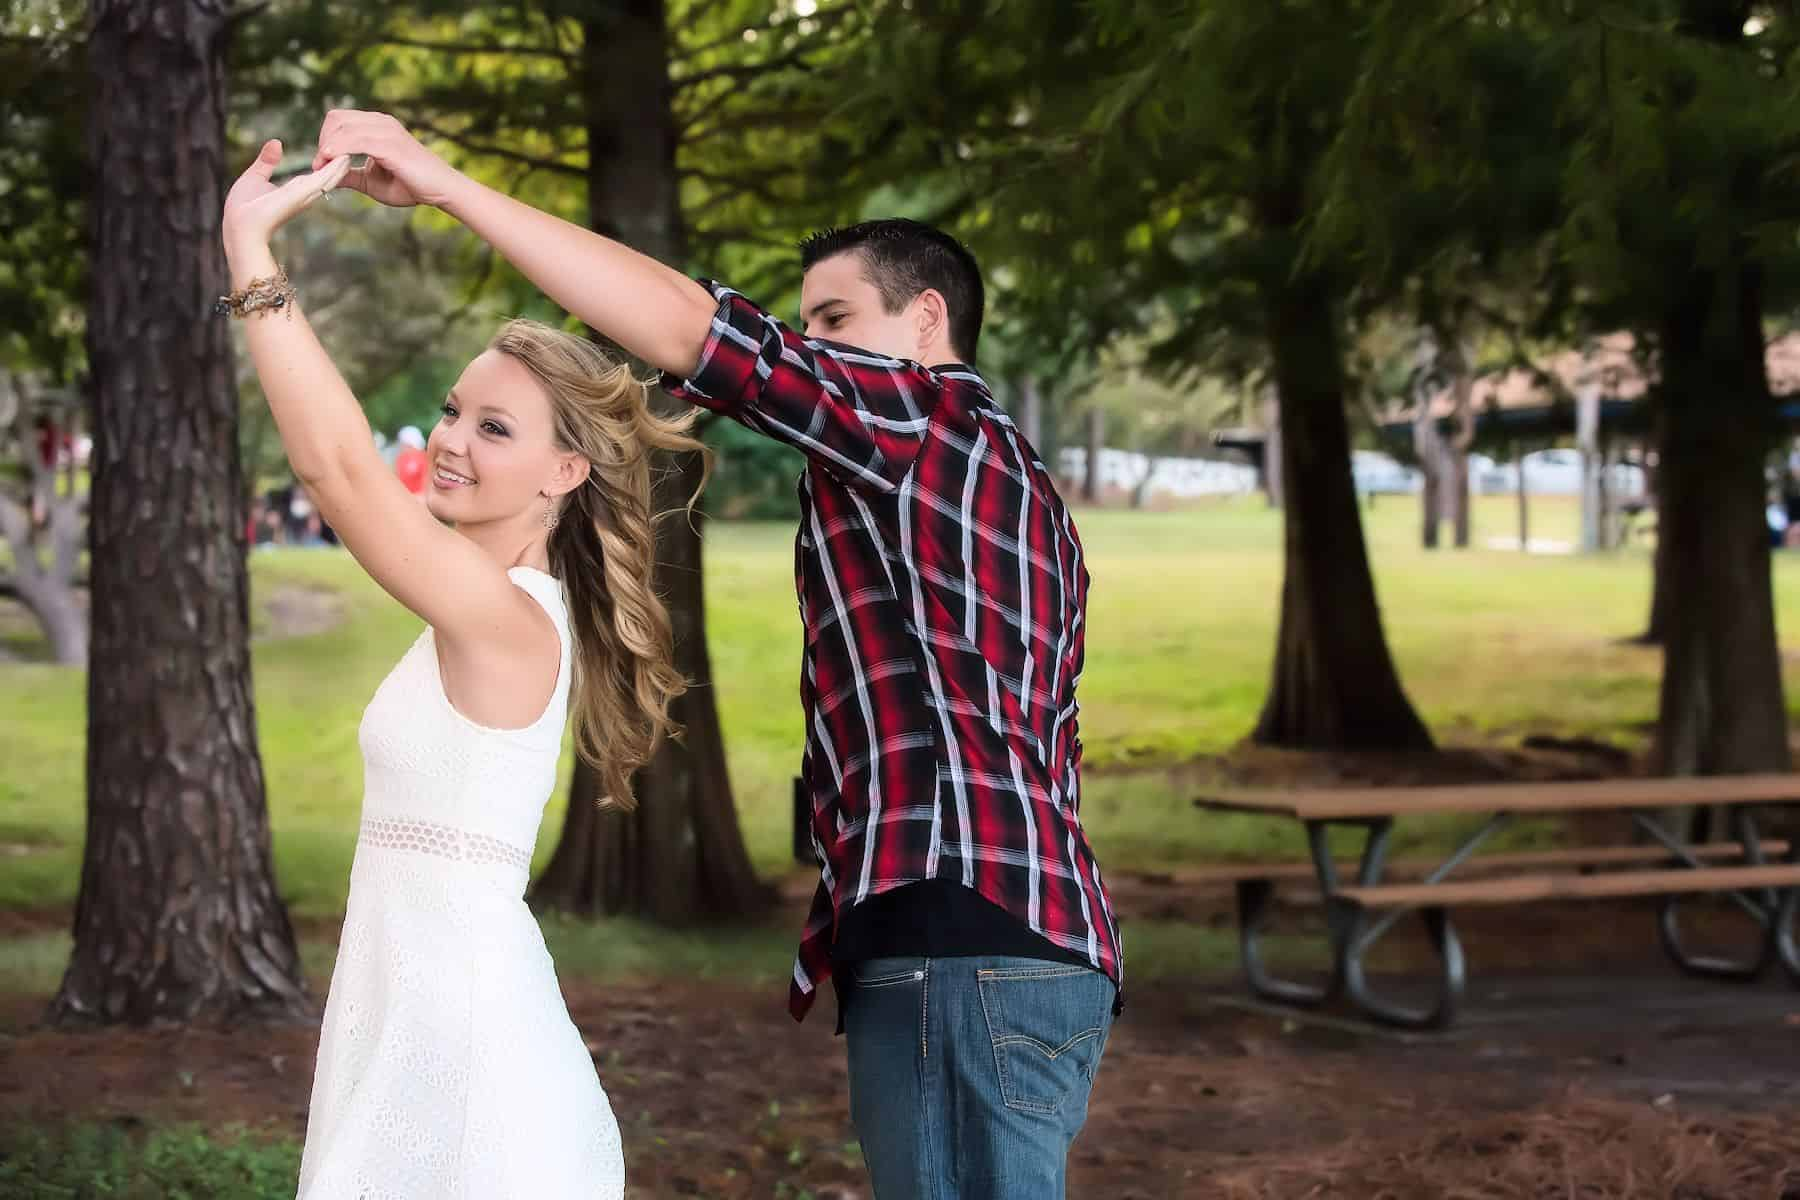 Twirling the bride in the park